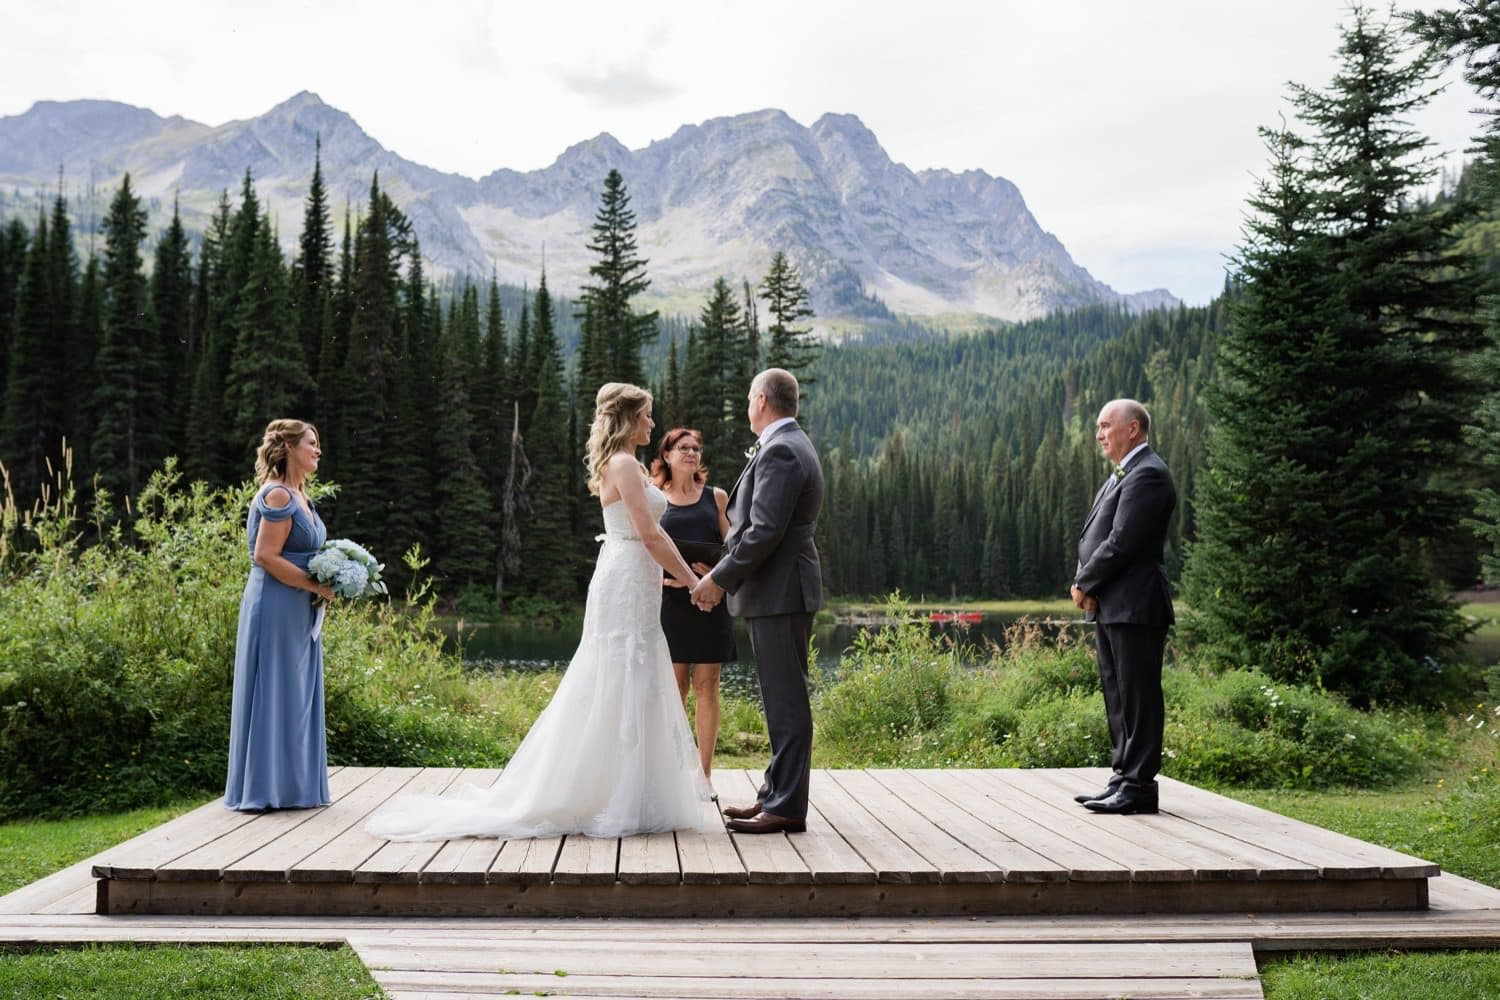 Mountain Elopement ceremony at Island Lake Lodge in Fernie, British Columbia